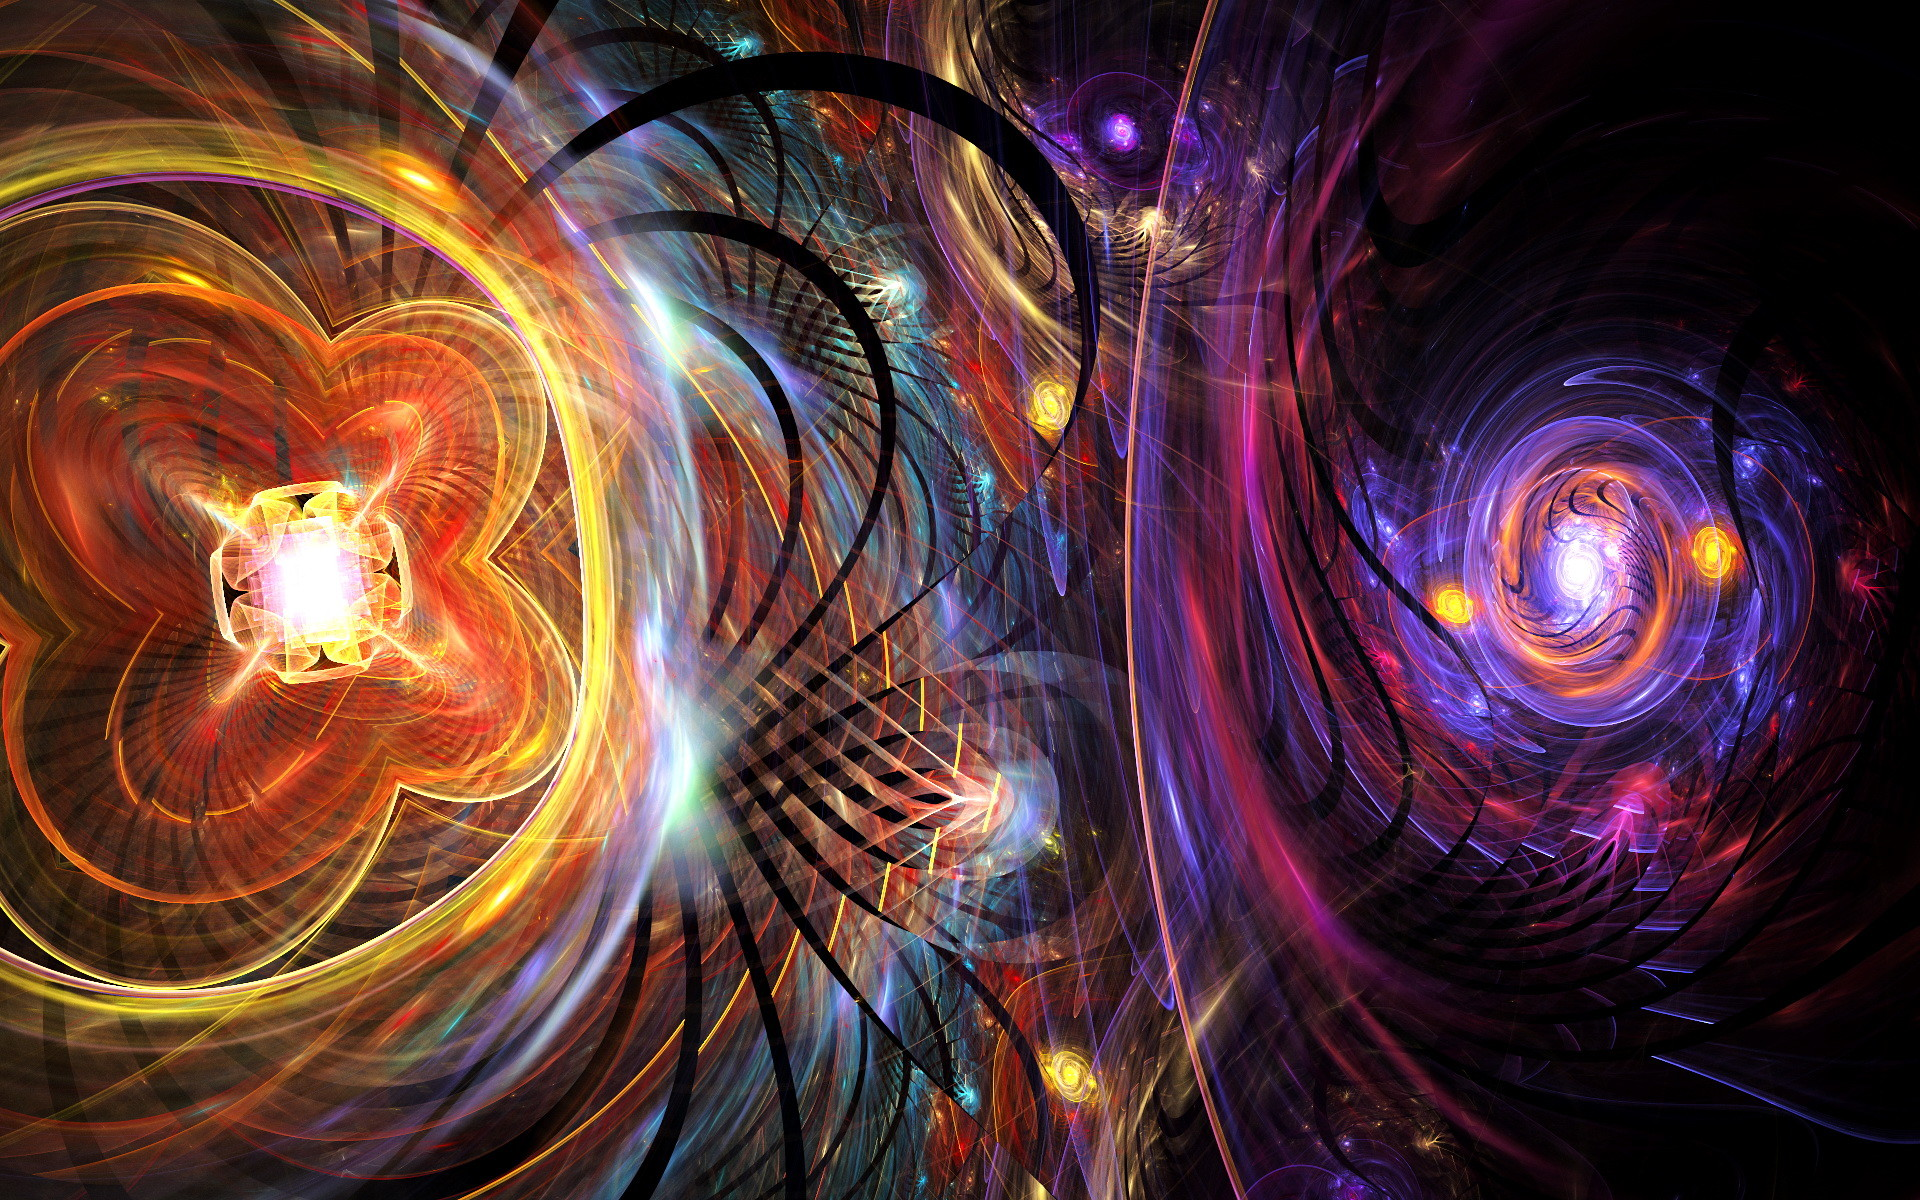 1920x1200 trippy wallpaper photo - http://69hdwallpapers.com/trippy-wallpaper-